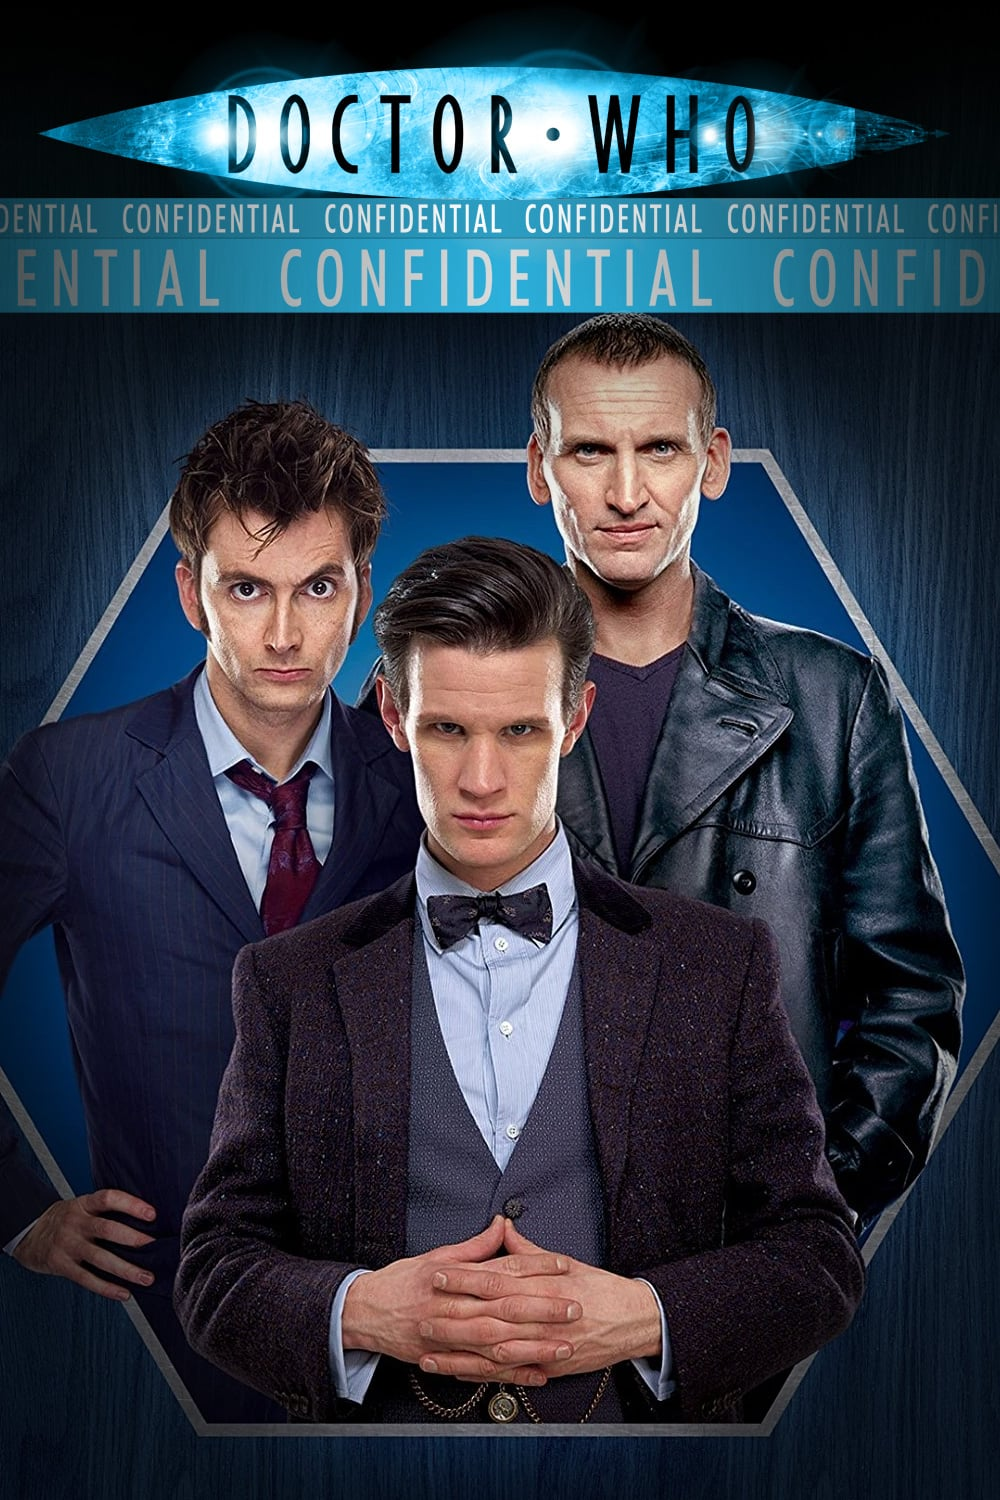 Doctor Who Confidential' />